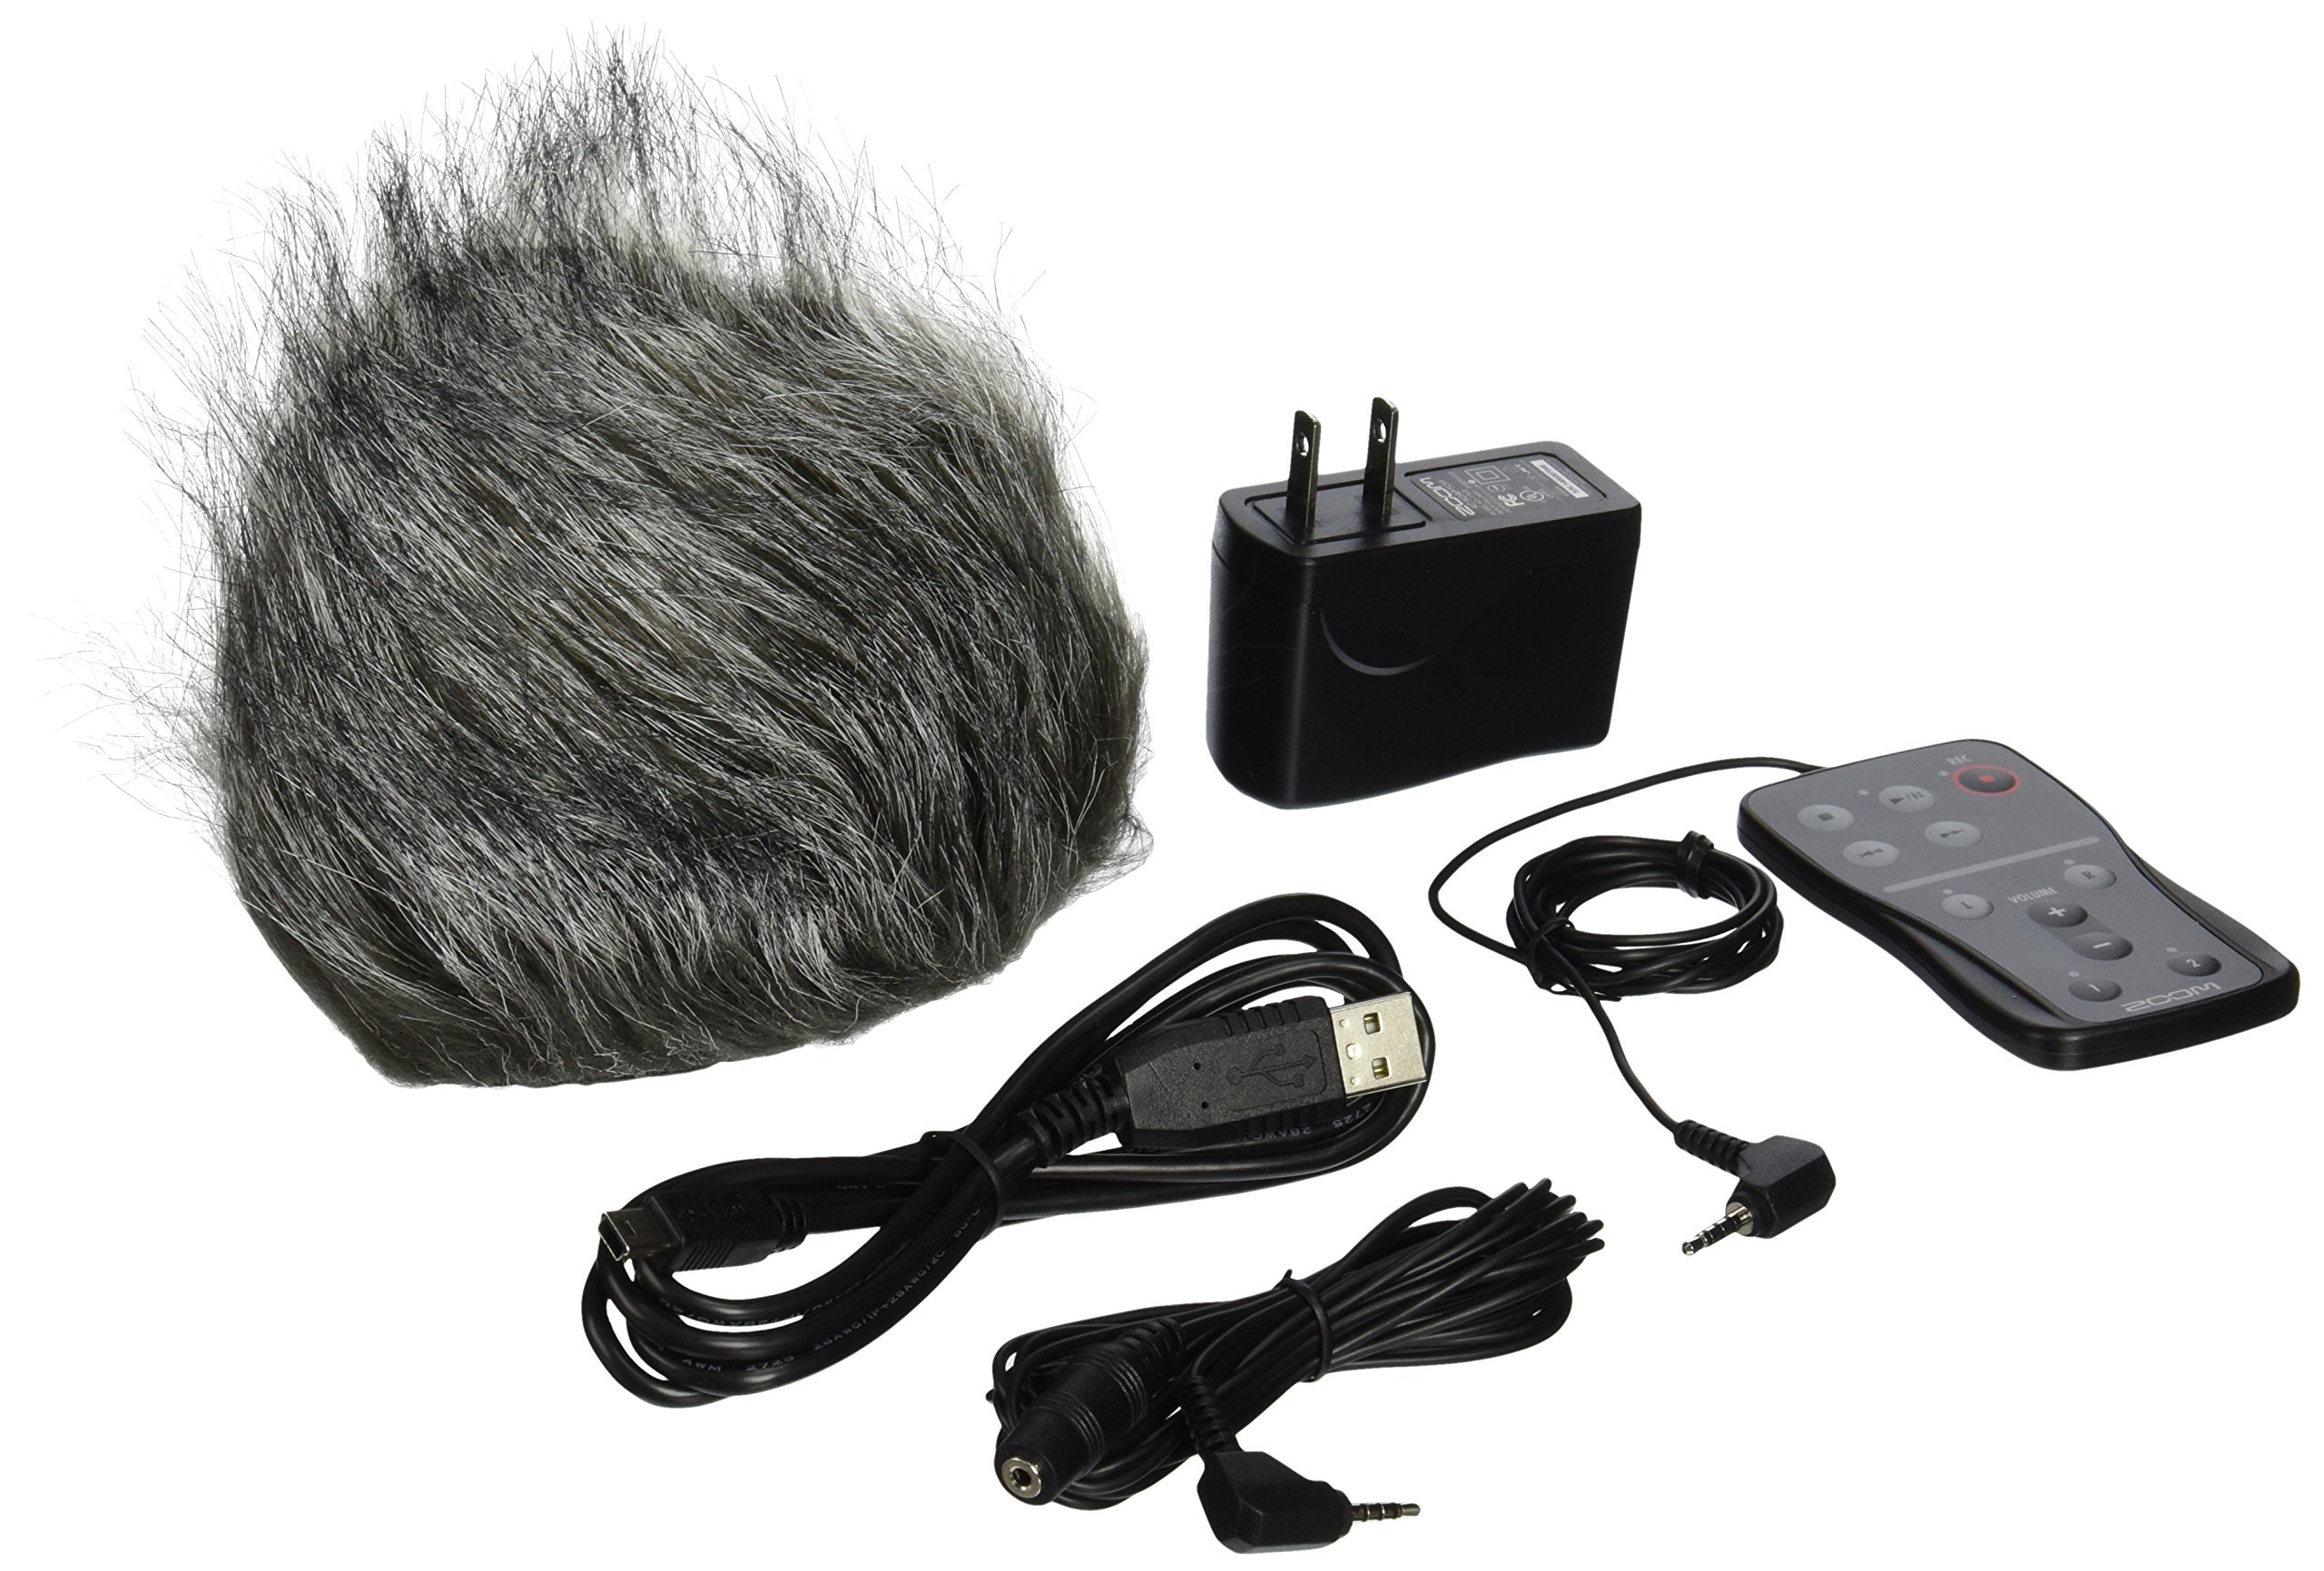 Zoom APH-5 Accessory Pack for H5 (Renewed)